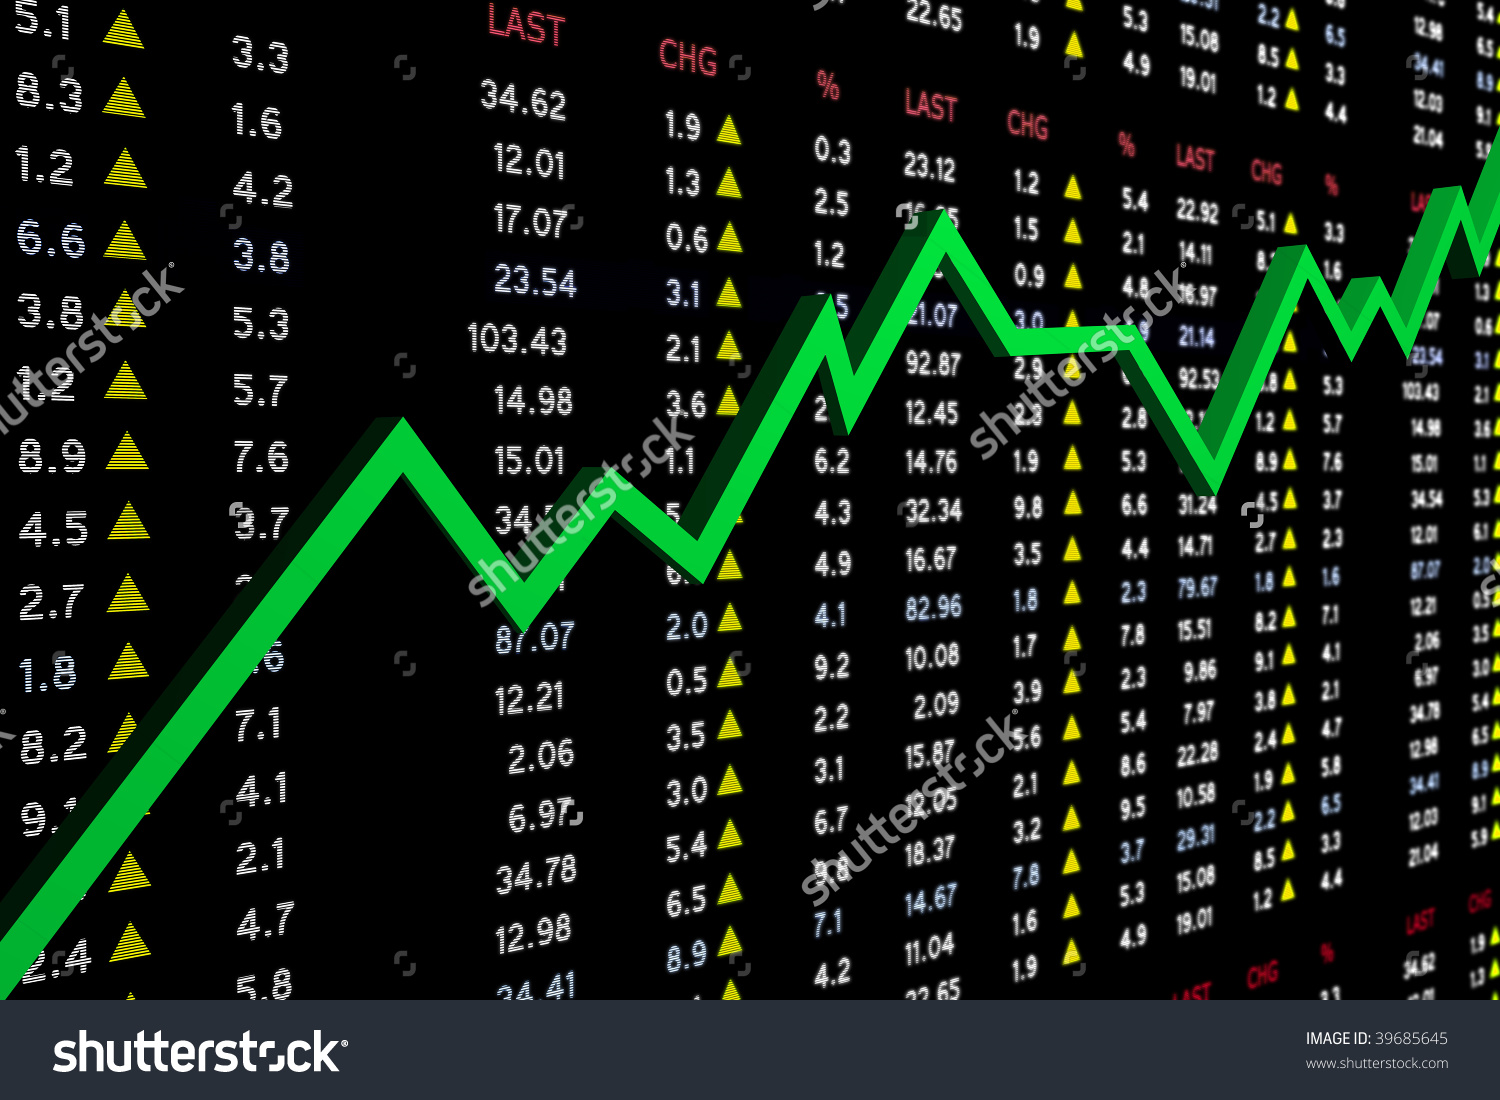 Clipart stock market graph vector library High Resolution Stock Market Board Graph Stock Illustration ... vector library